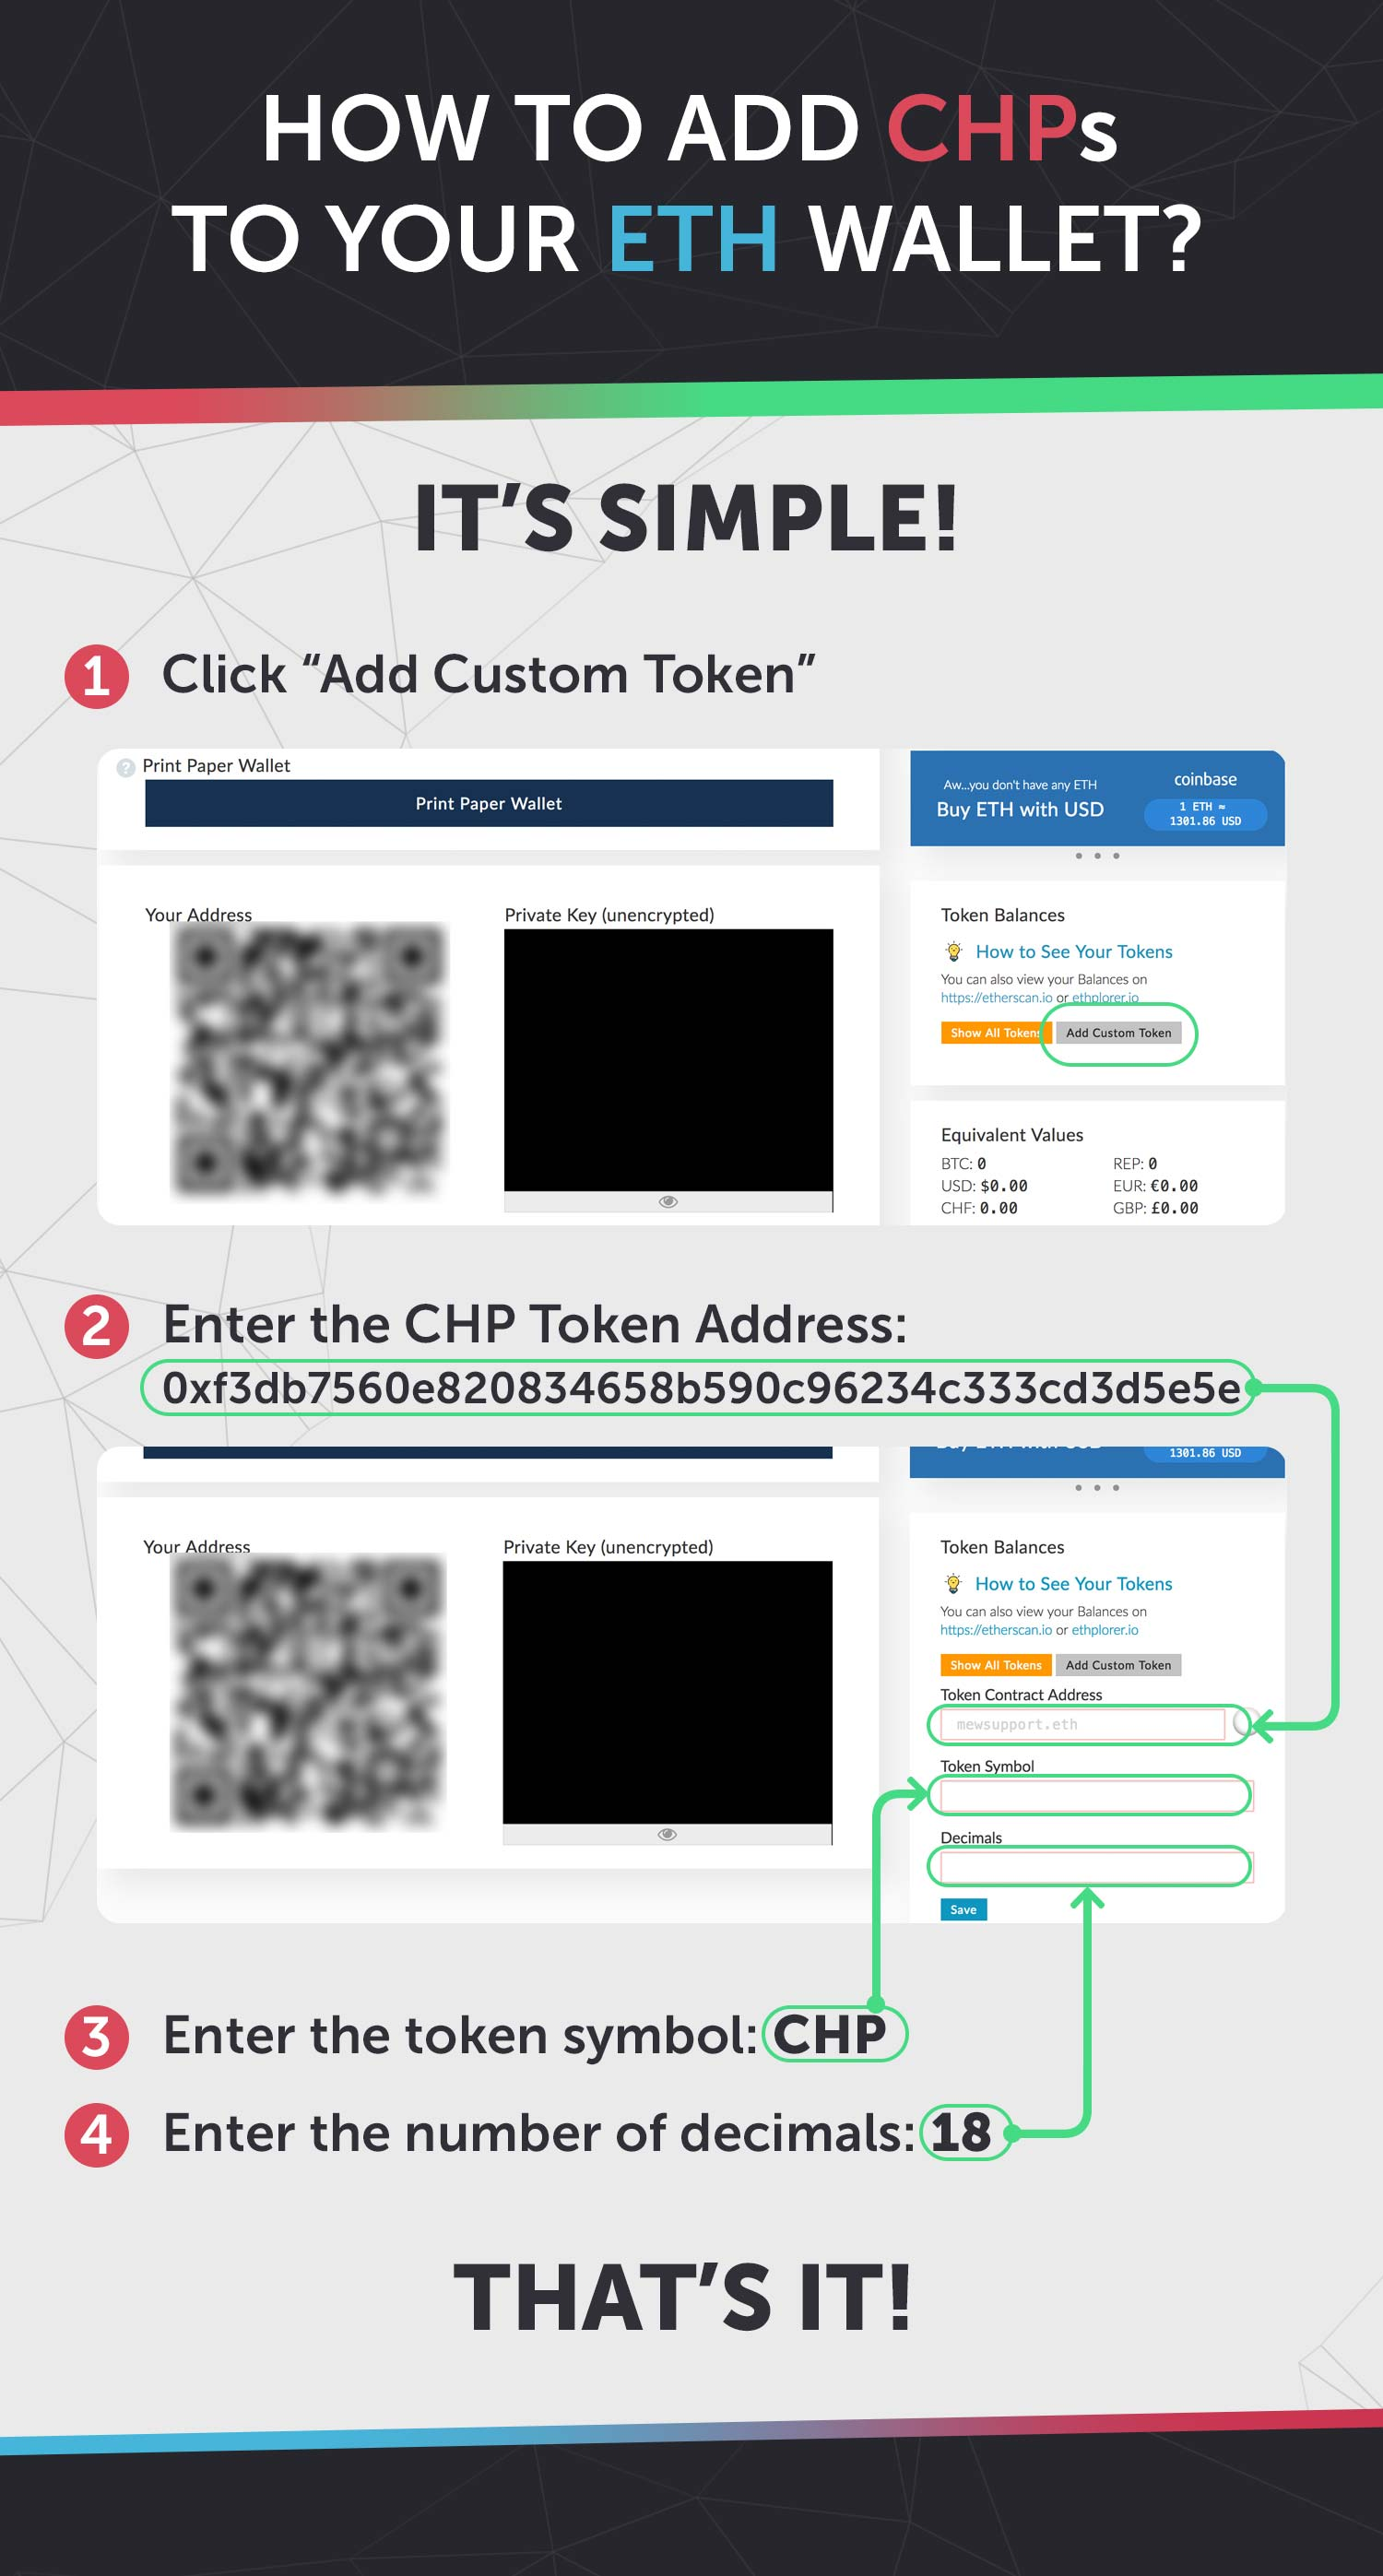 How to add CHP to your ETH wallet?